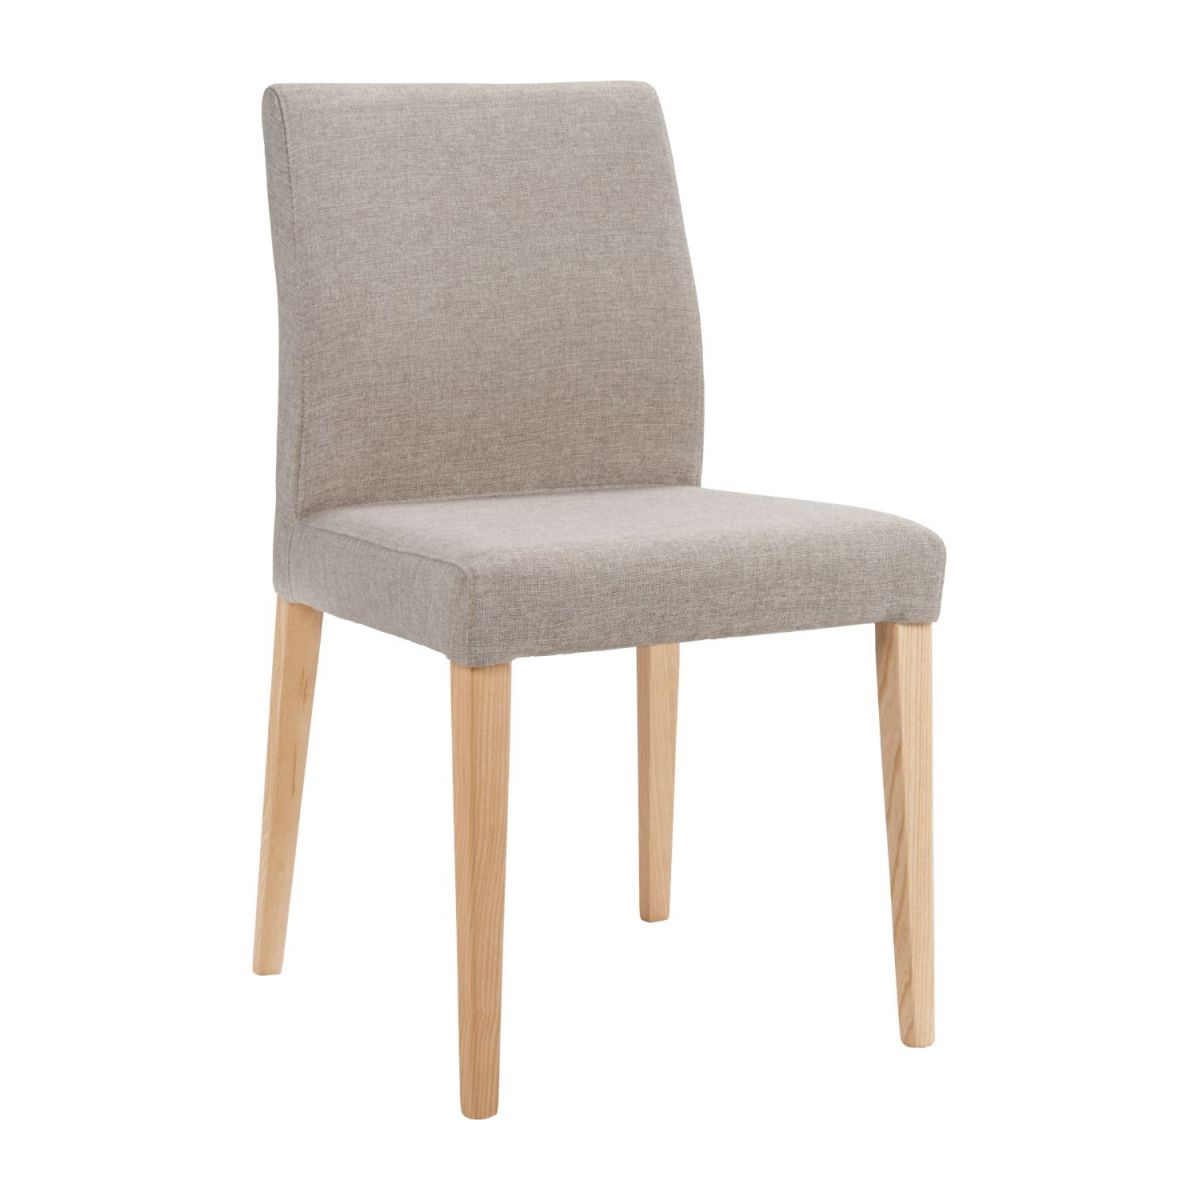 Chair made of fabric, beige with ash legs n°1